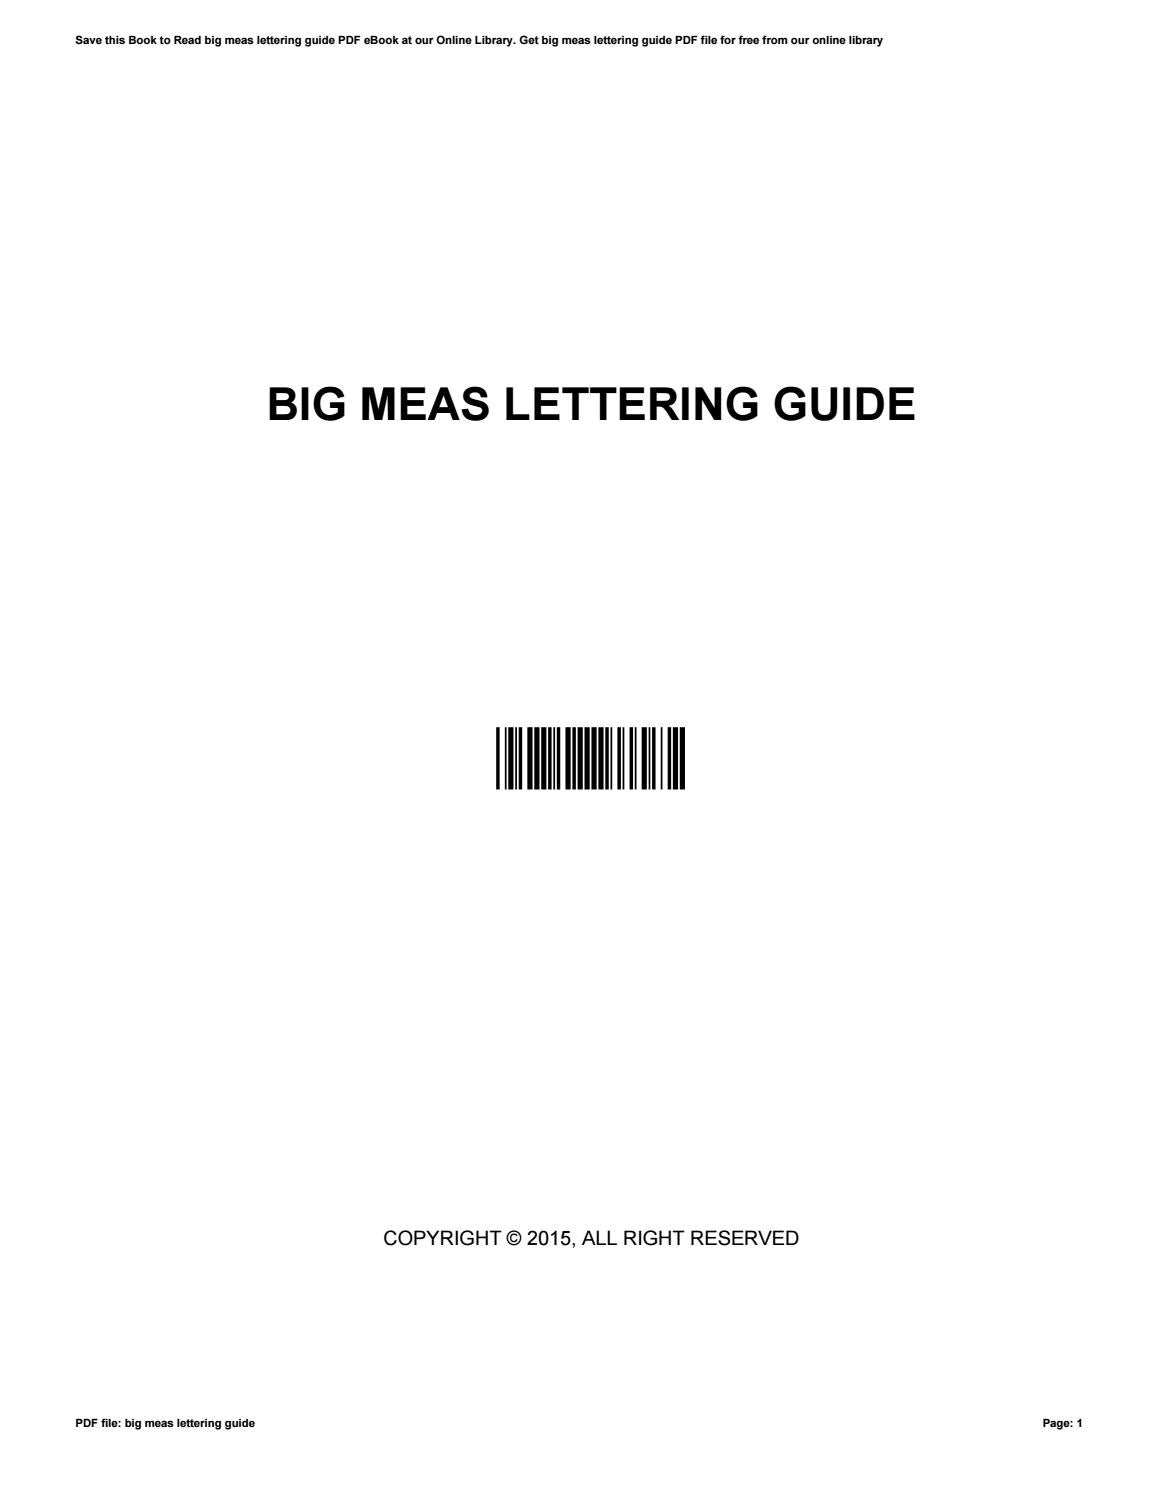 Big Meas Lettering Guide By Yvonnemartin4848 Issuu